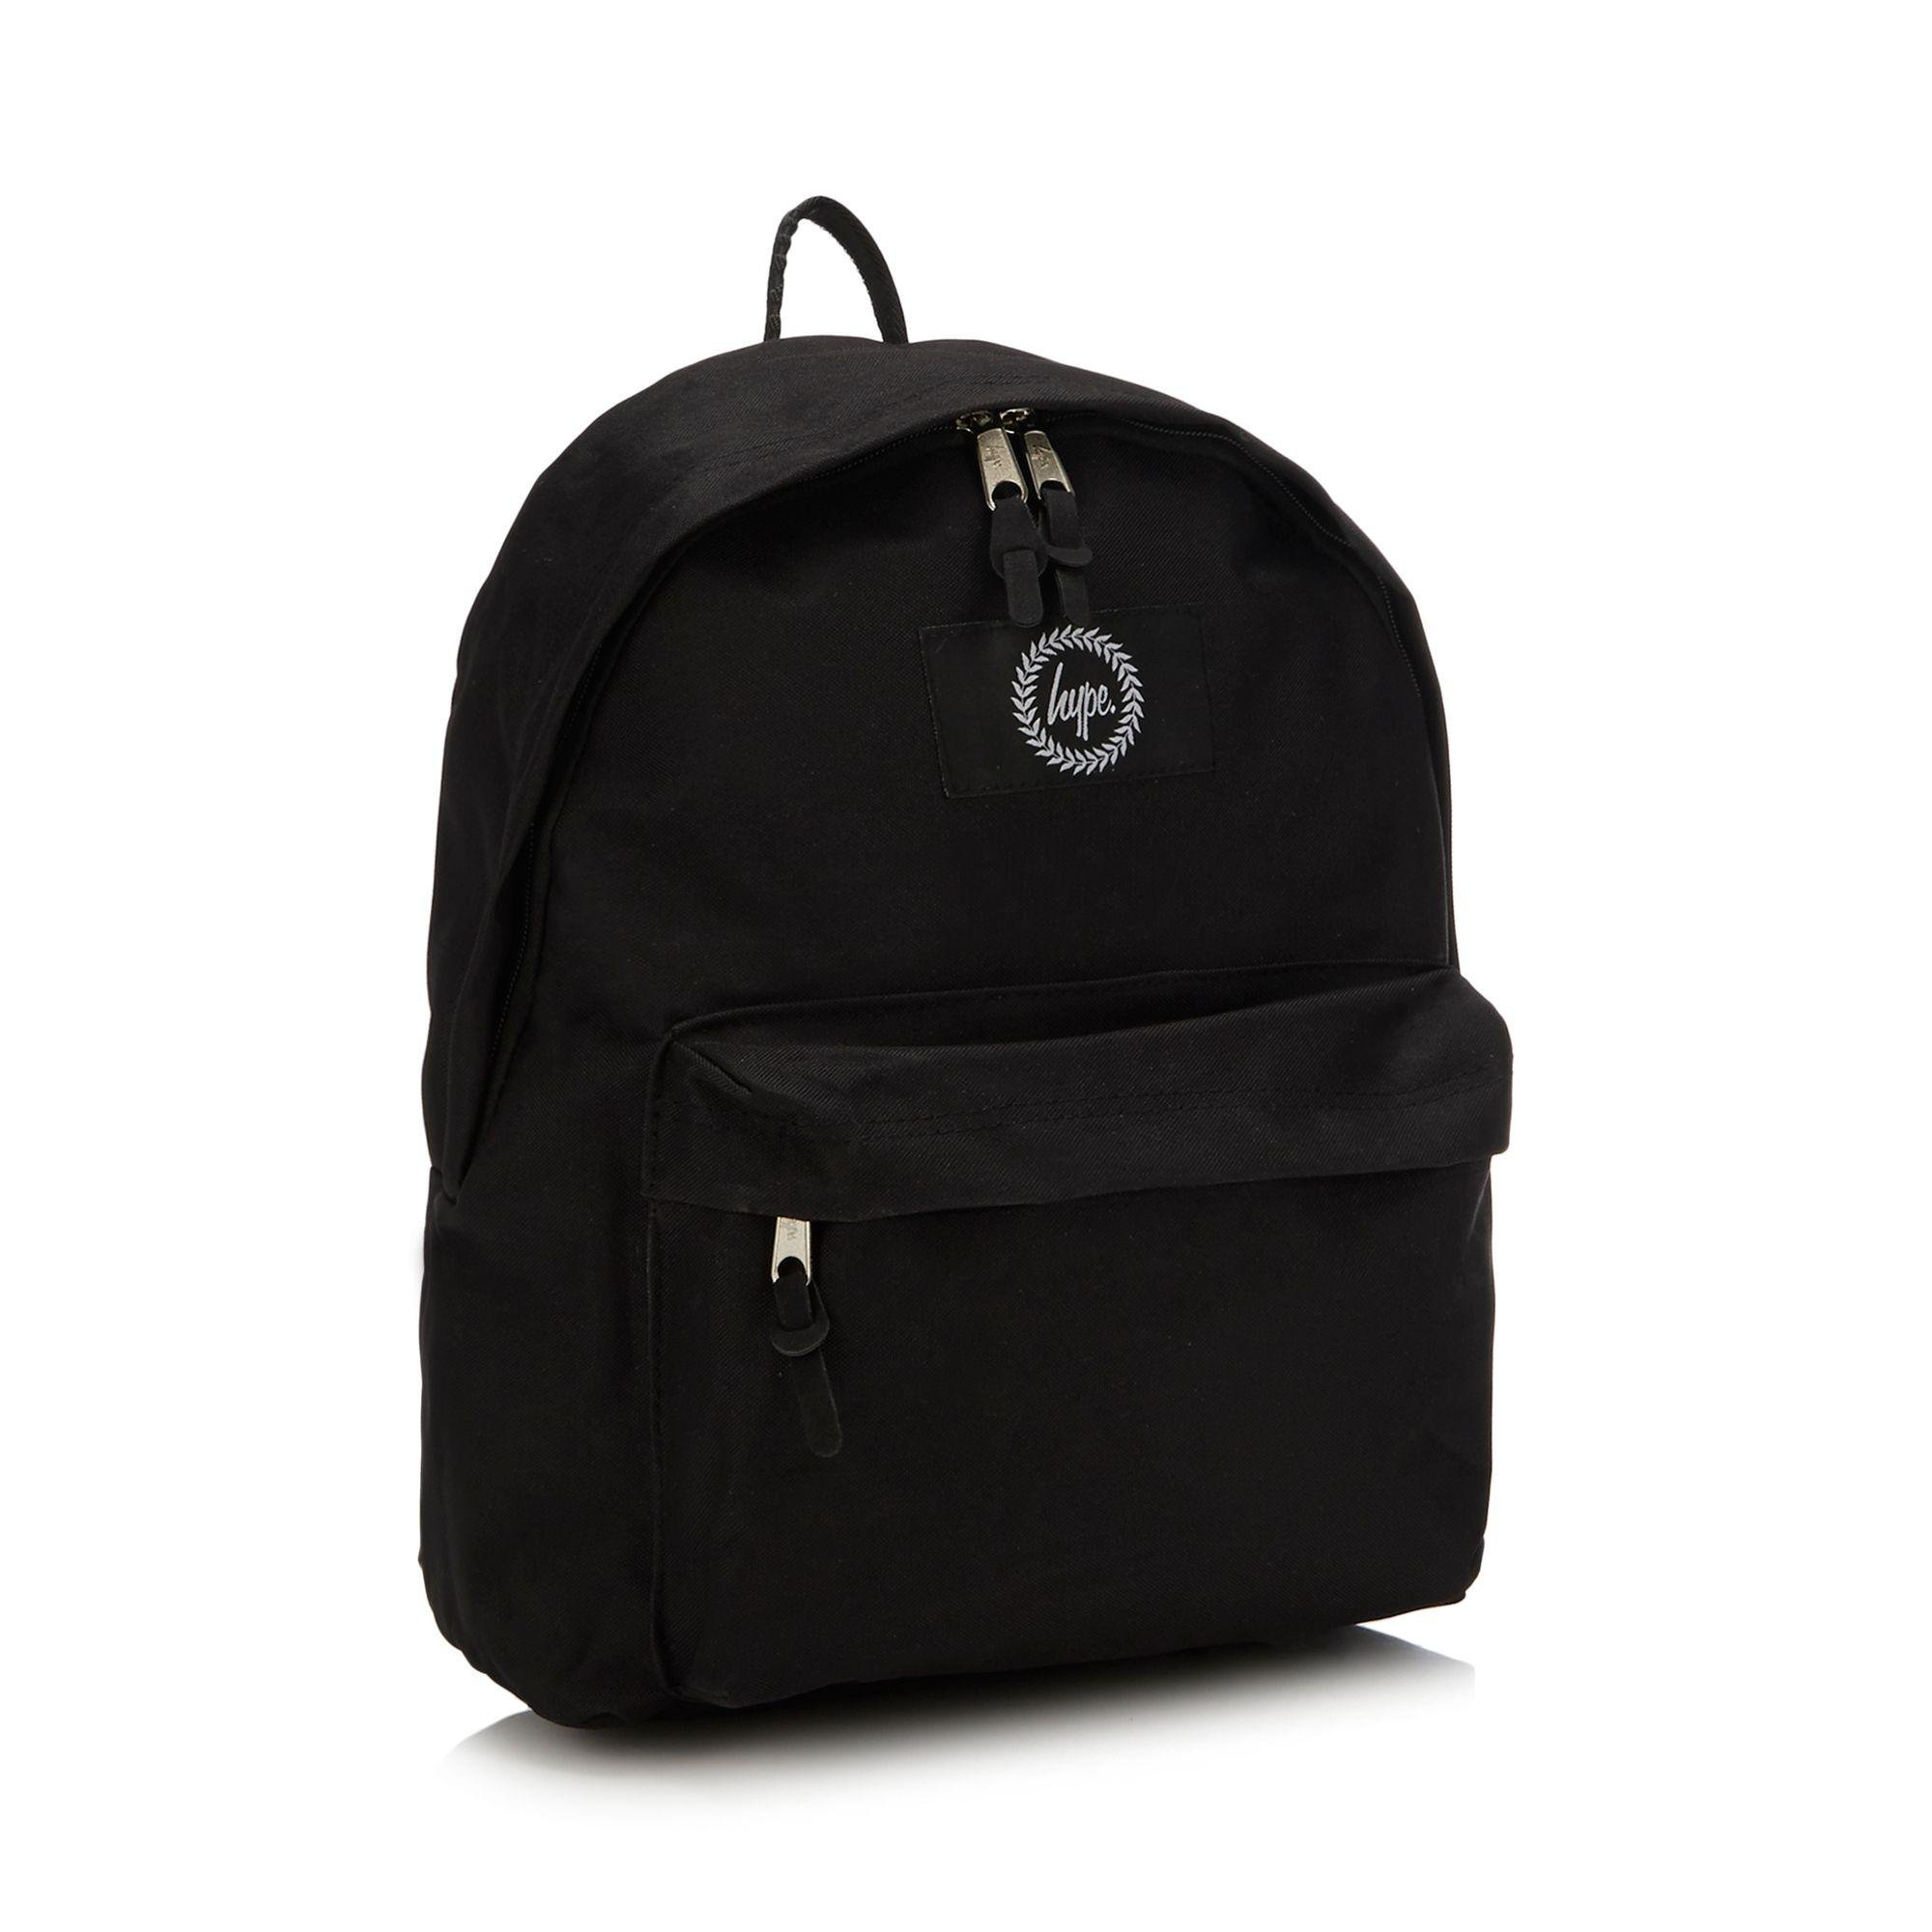 b73444096c41 Hype Black Embroidered Logo Backpack in Black for Men - Lyst